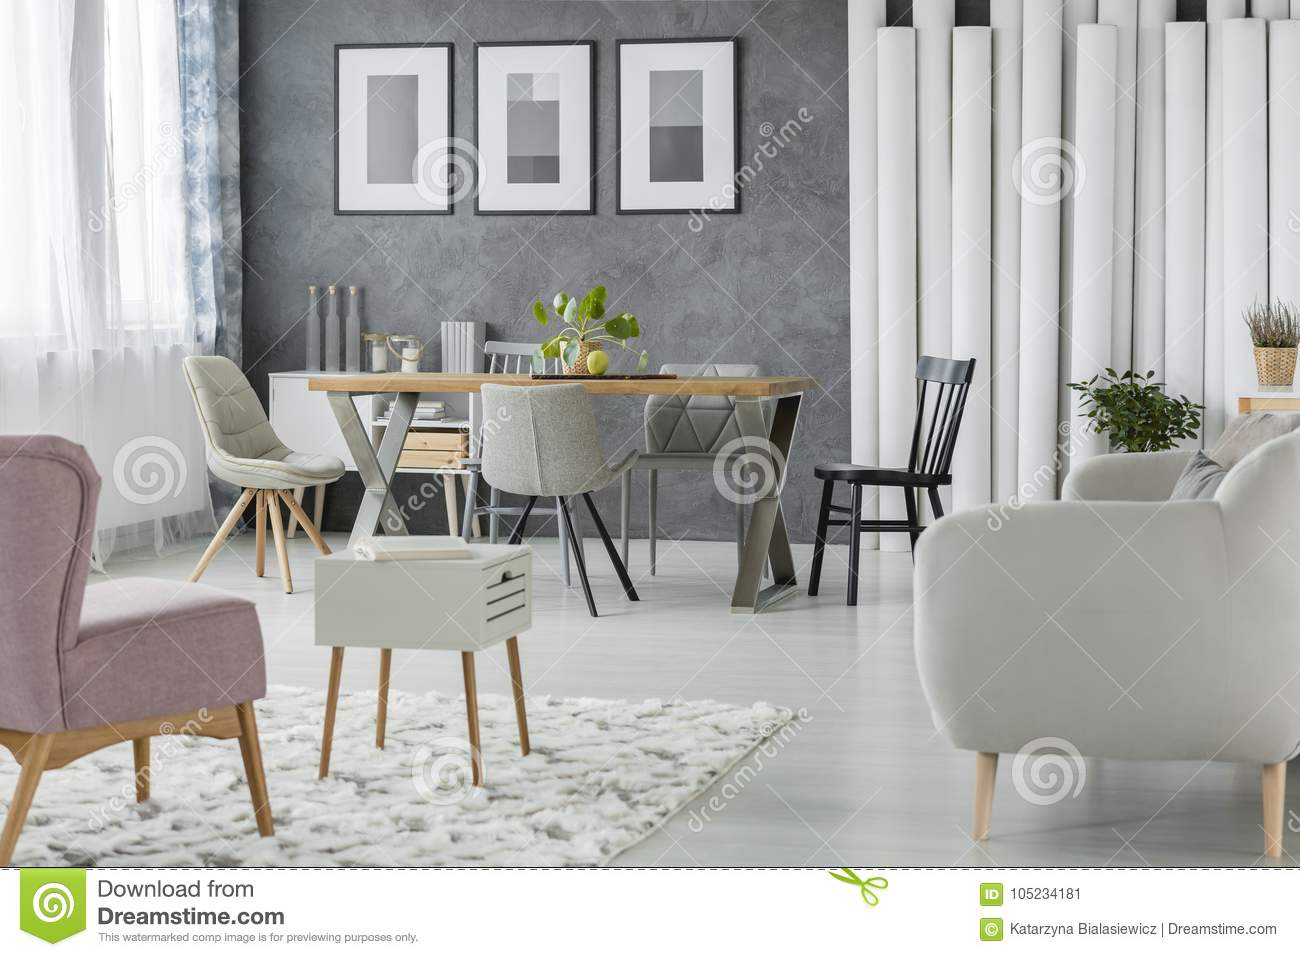 Multifunctional Living Room With Table